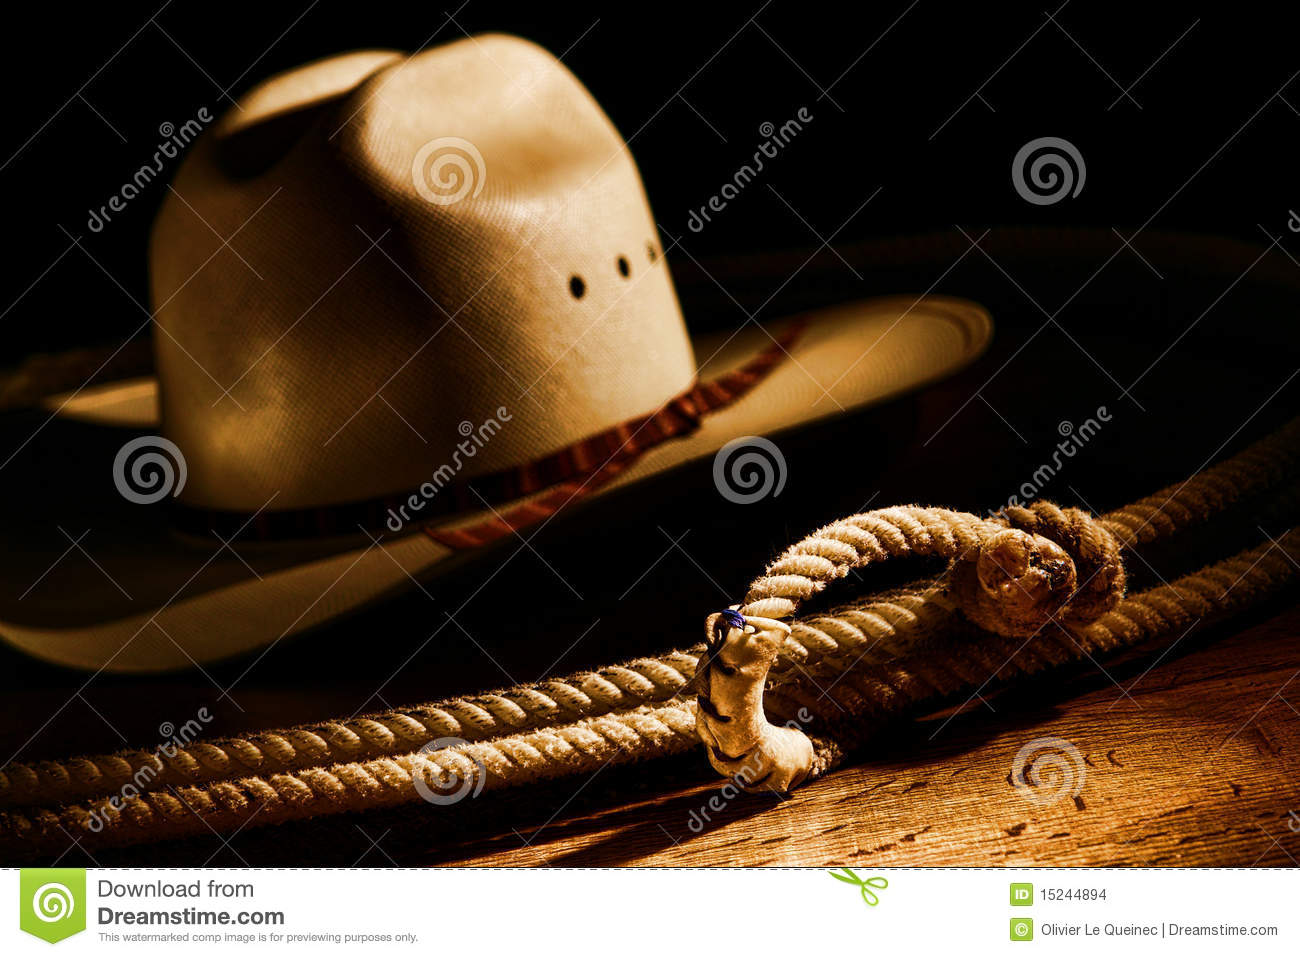 e0915a5fa26a1 American West rodeo cowboy lasso rope and traditional Western white straw  hat in dramatic light with dark shadows